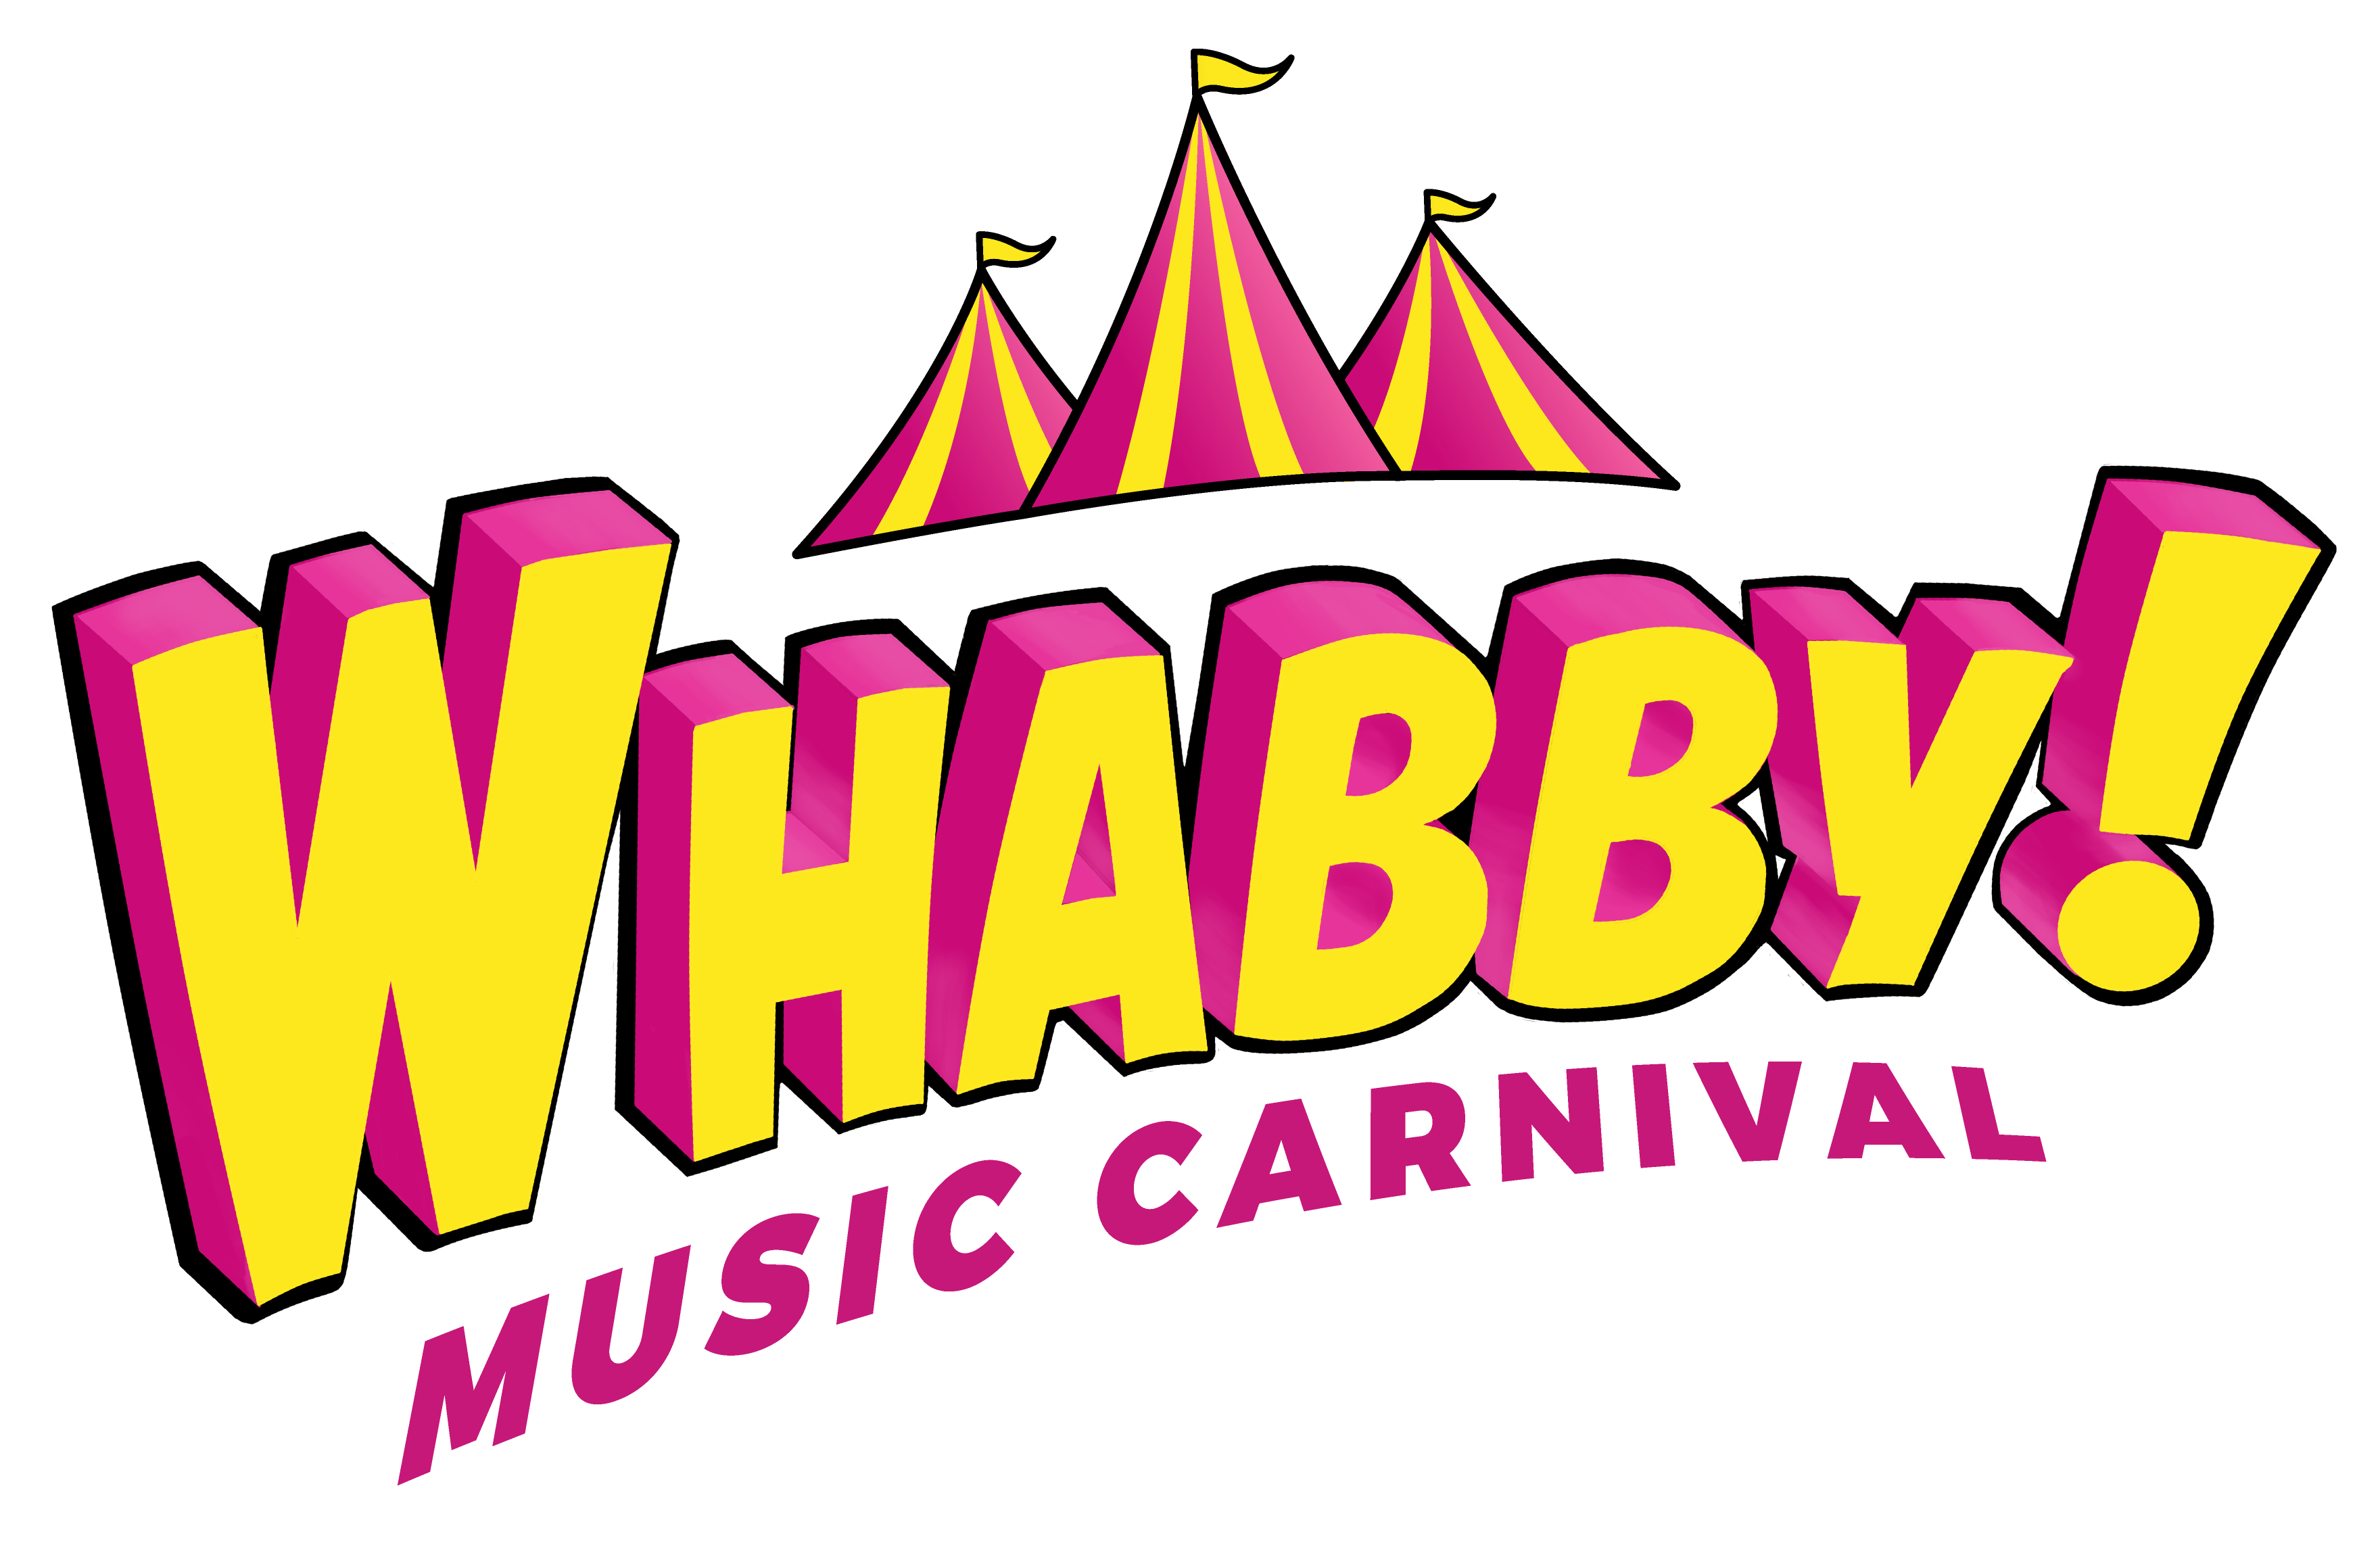 WHABBY! Music Carnival 2019 features an Exciting and Unique Line-Up of Singaporean Music and Art